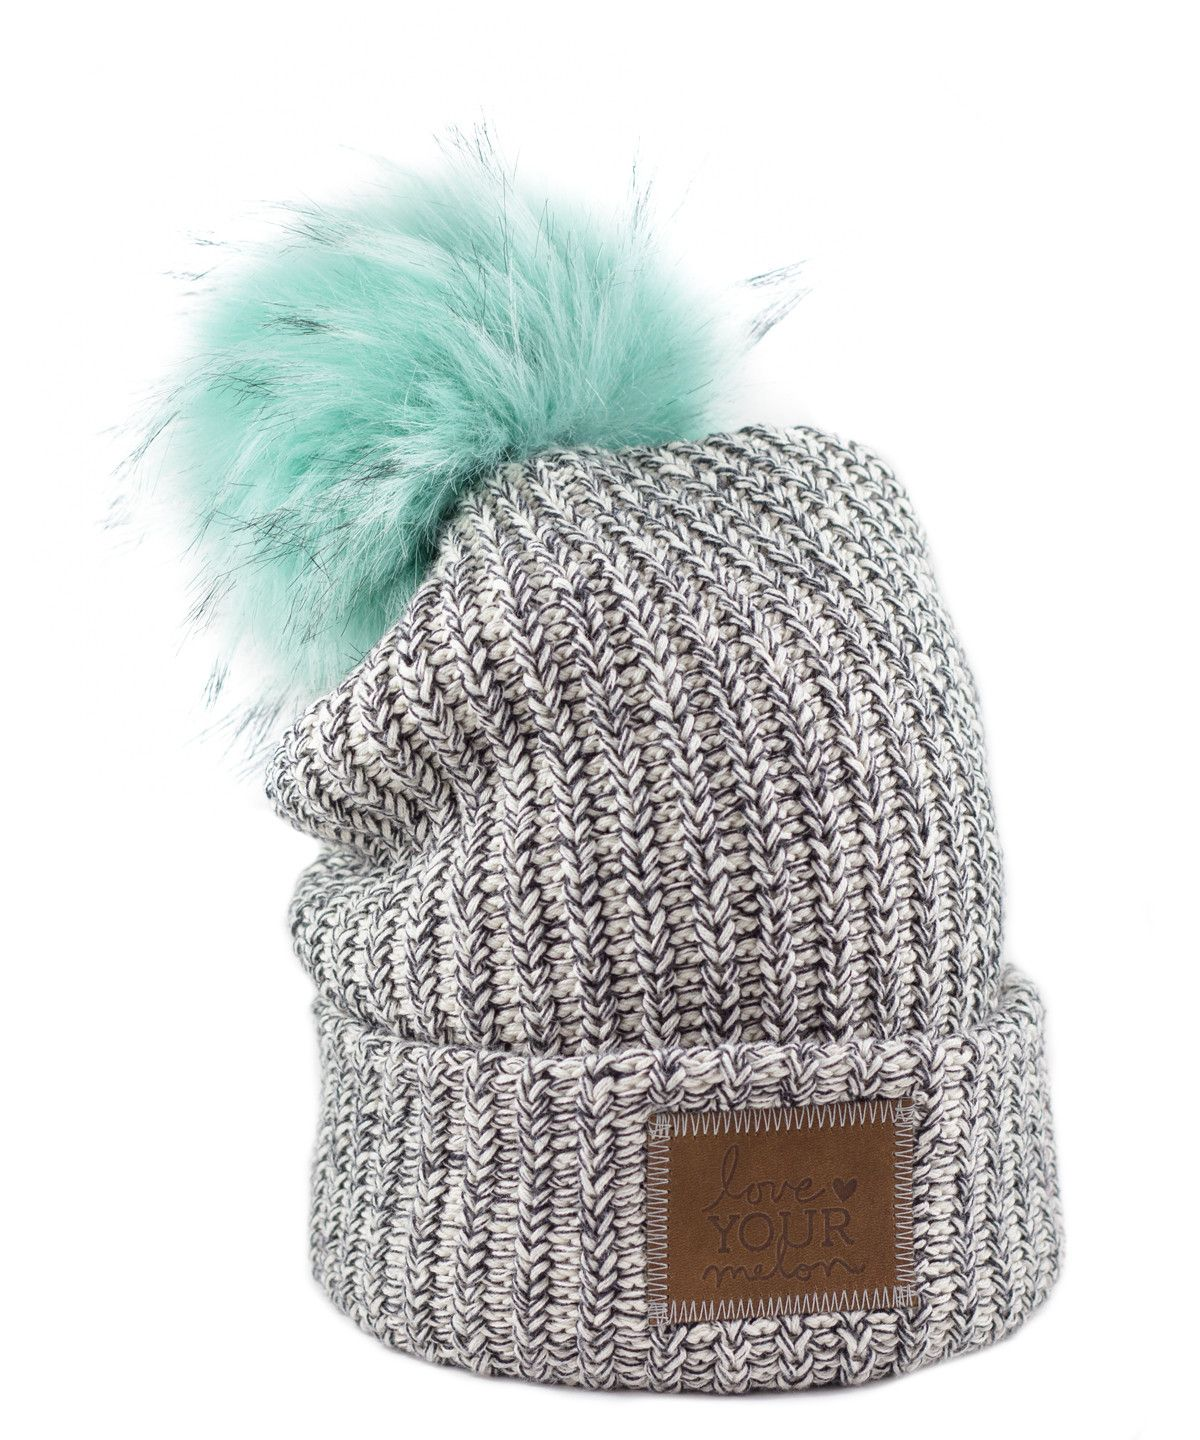 Black Speckled Cuffed Pom Beanie (Teal Pom) – Love Your Melon I would love  this hat so much!! And it s for a cause 727ca3fd6e5